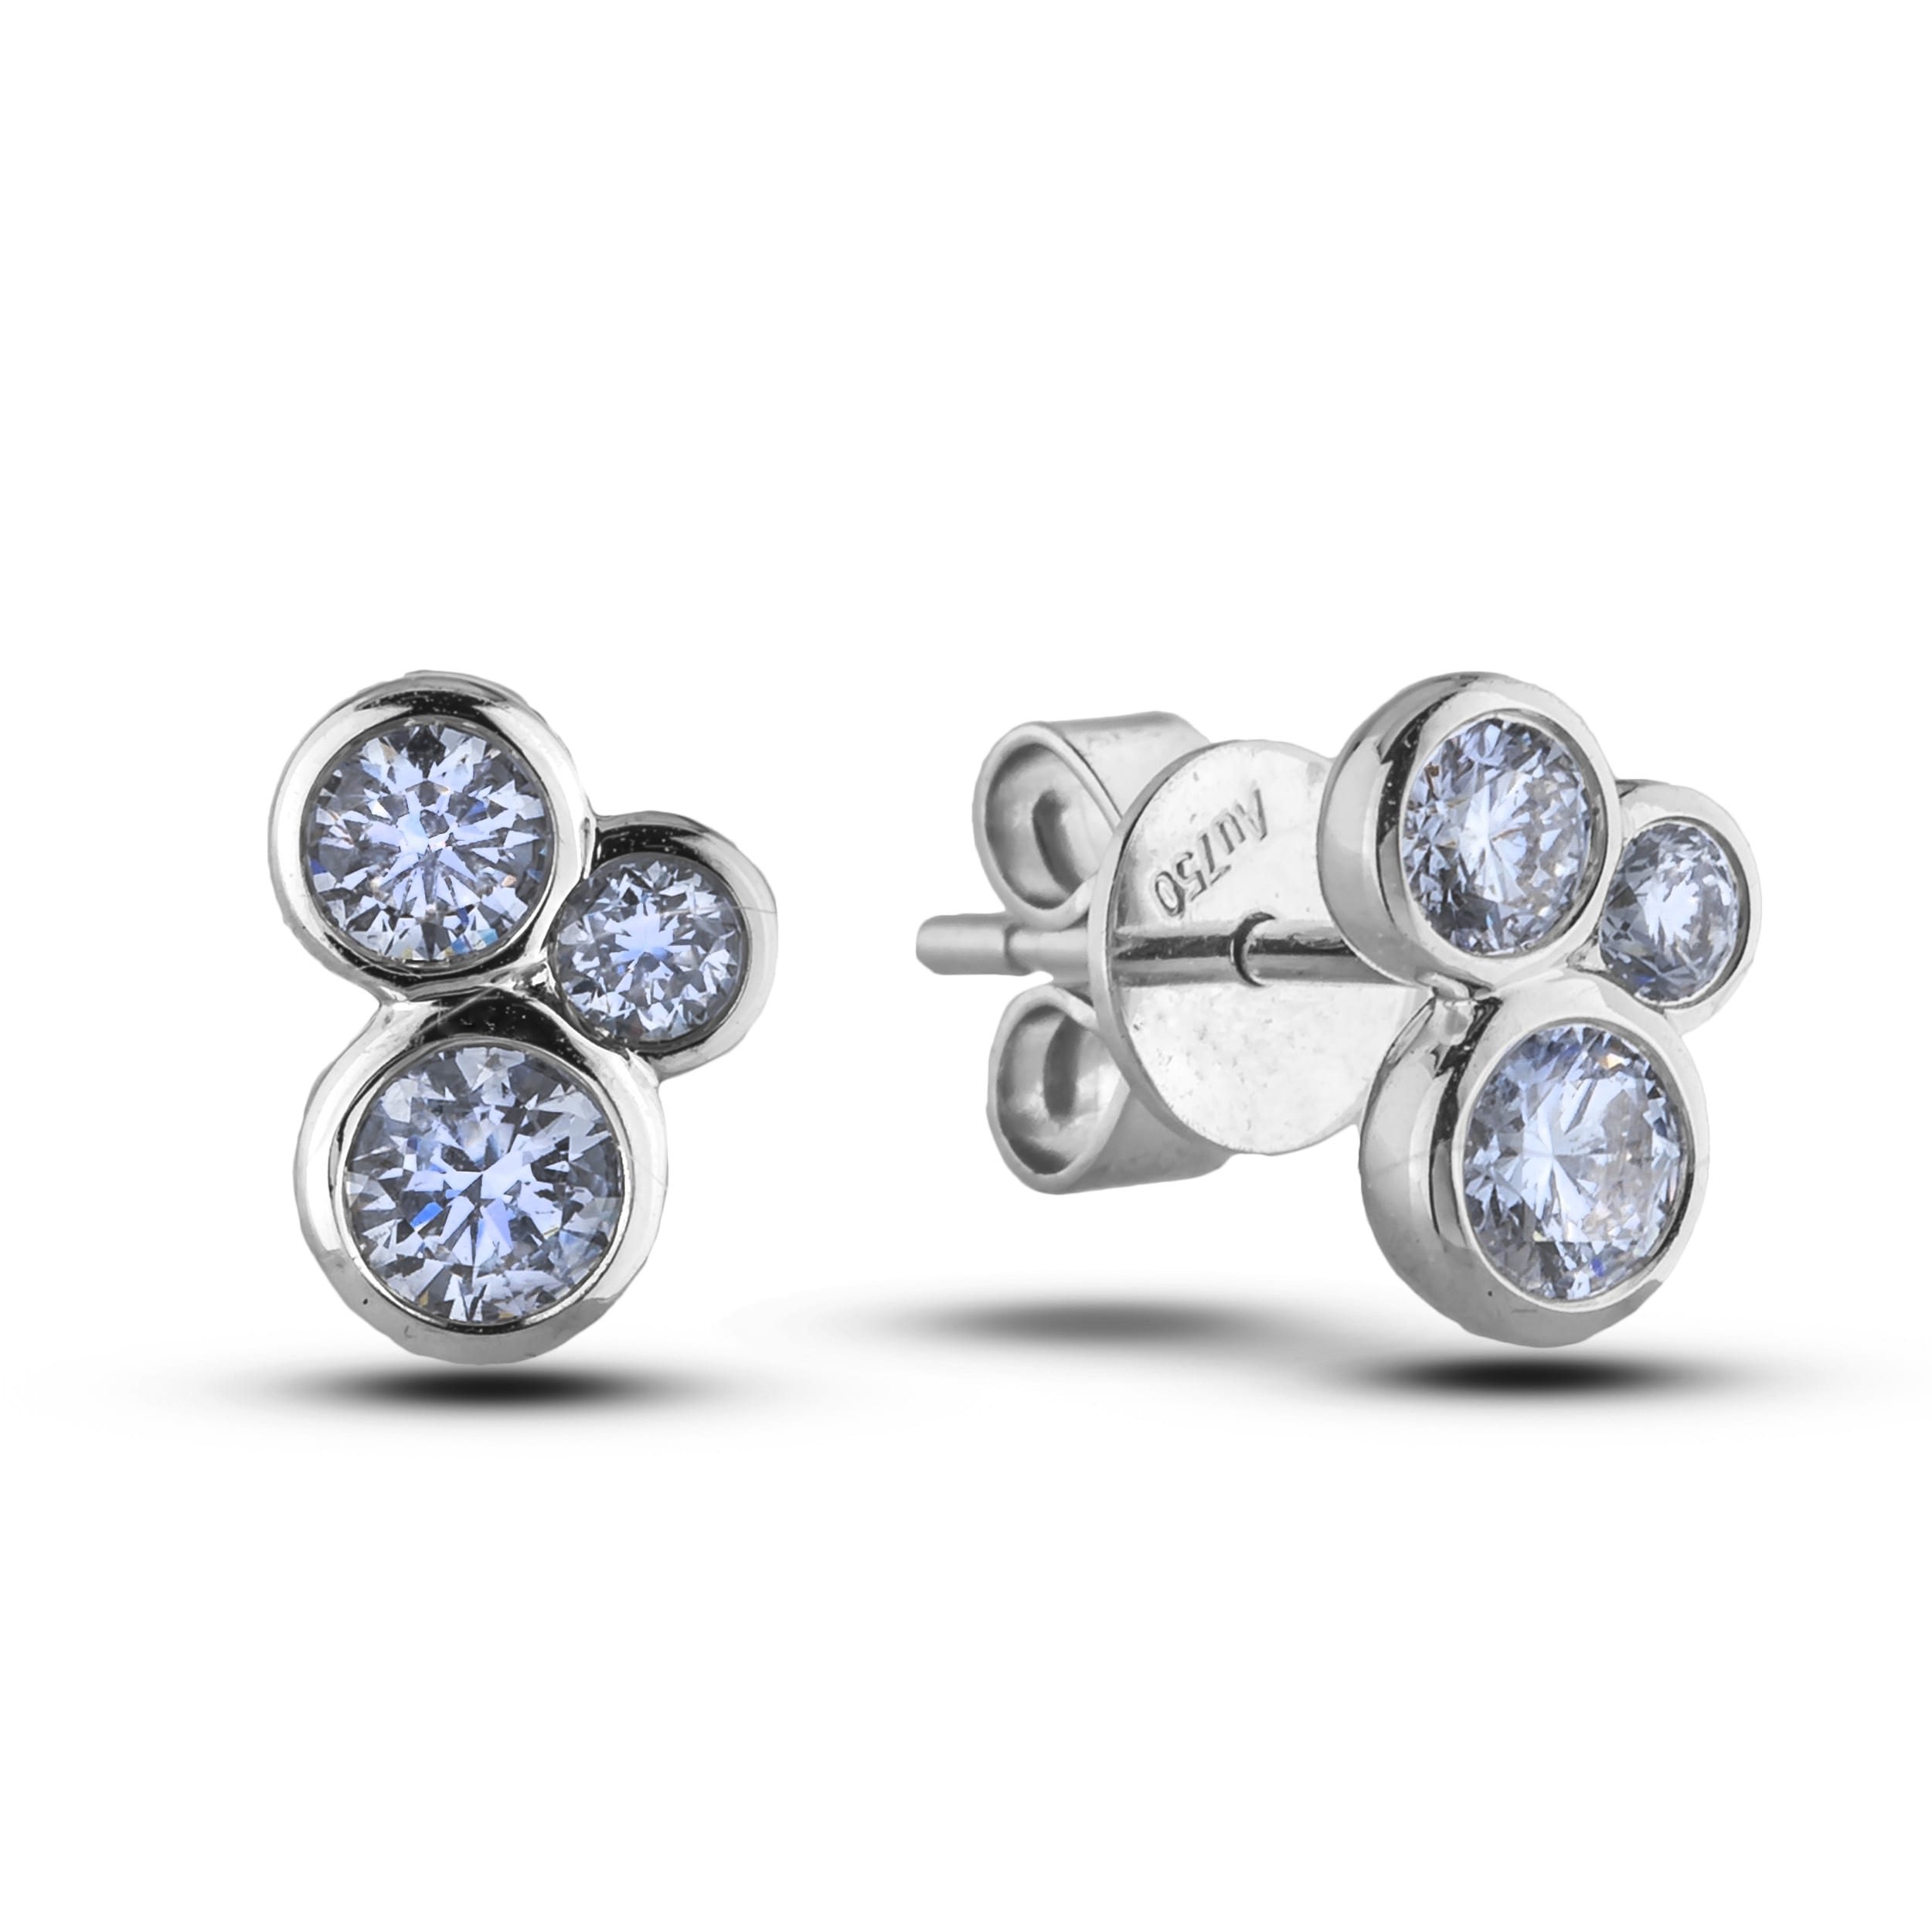 ac392cc67 FOREVERMARK TRIBUTE COLLECTION DIAMOND STUD EARRINGS - Lugaro